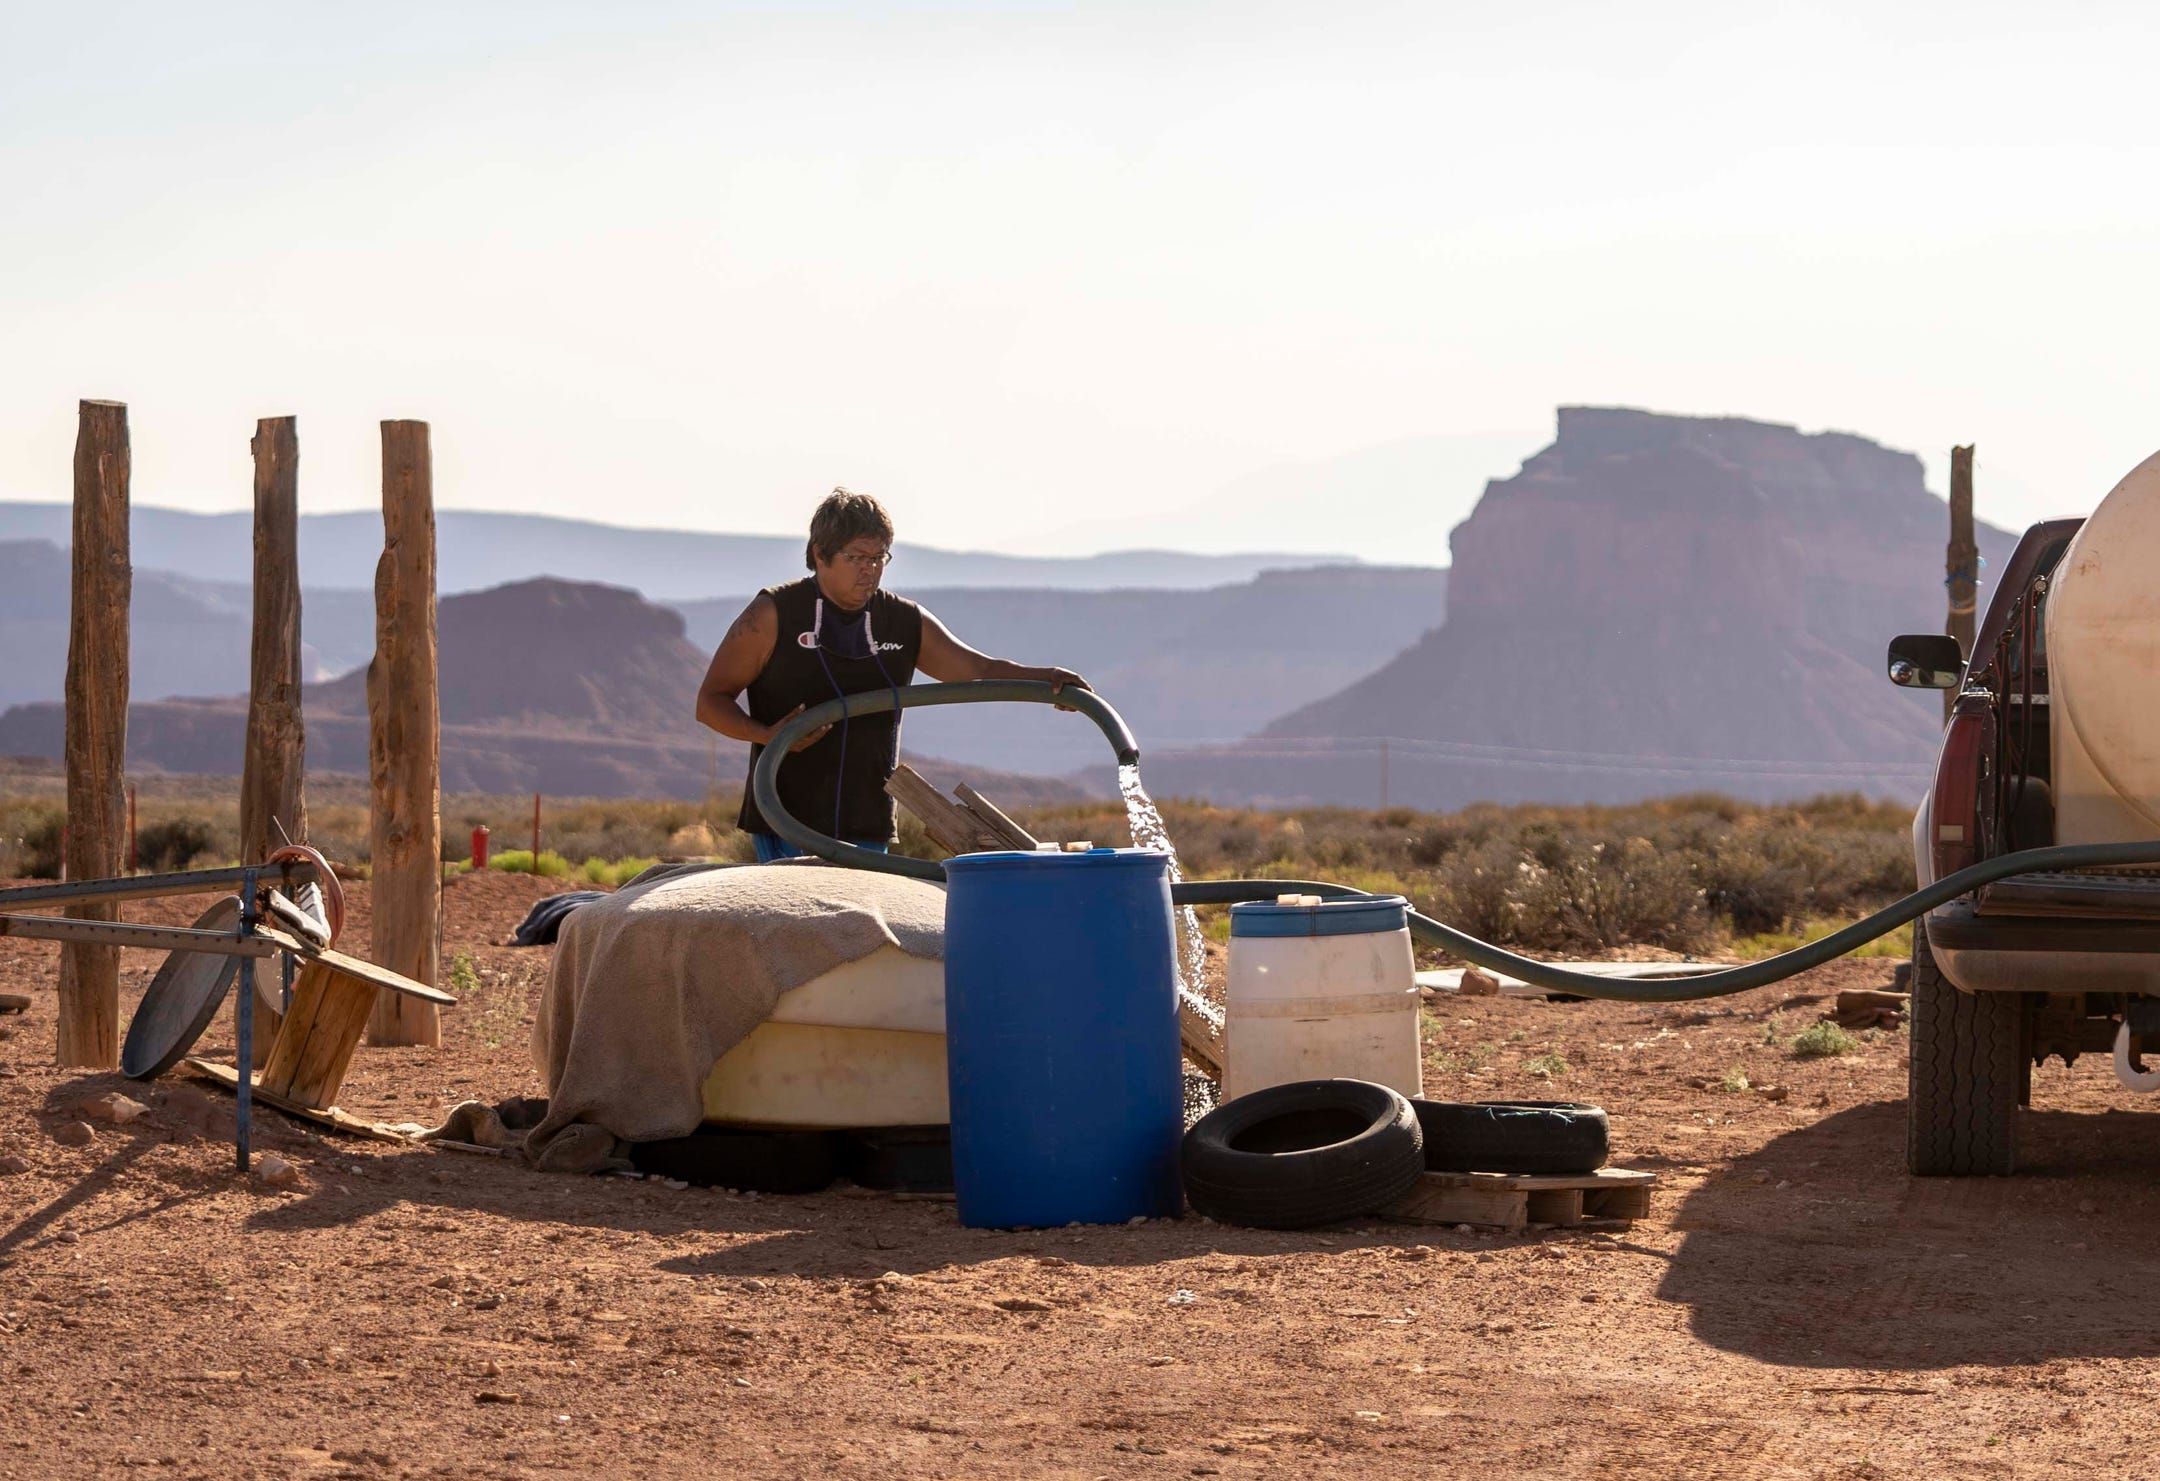 Waiting-for-water-On-the-Navajo-Nation-long-lines-scarce-resources-a-cry-for-solutions